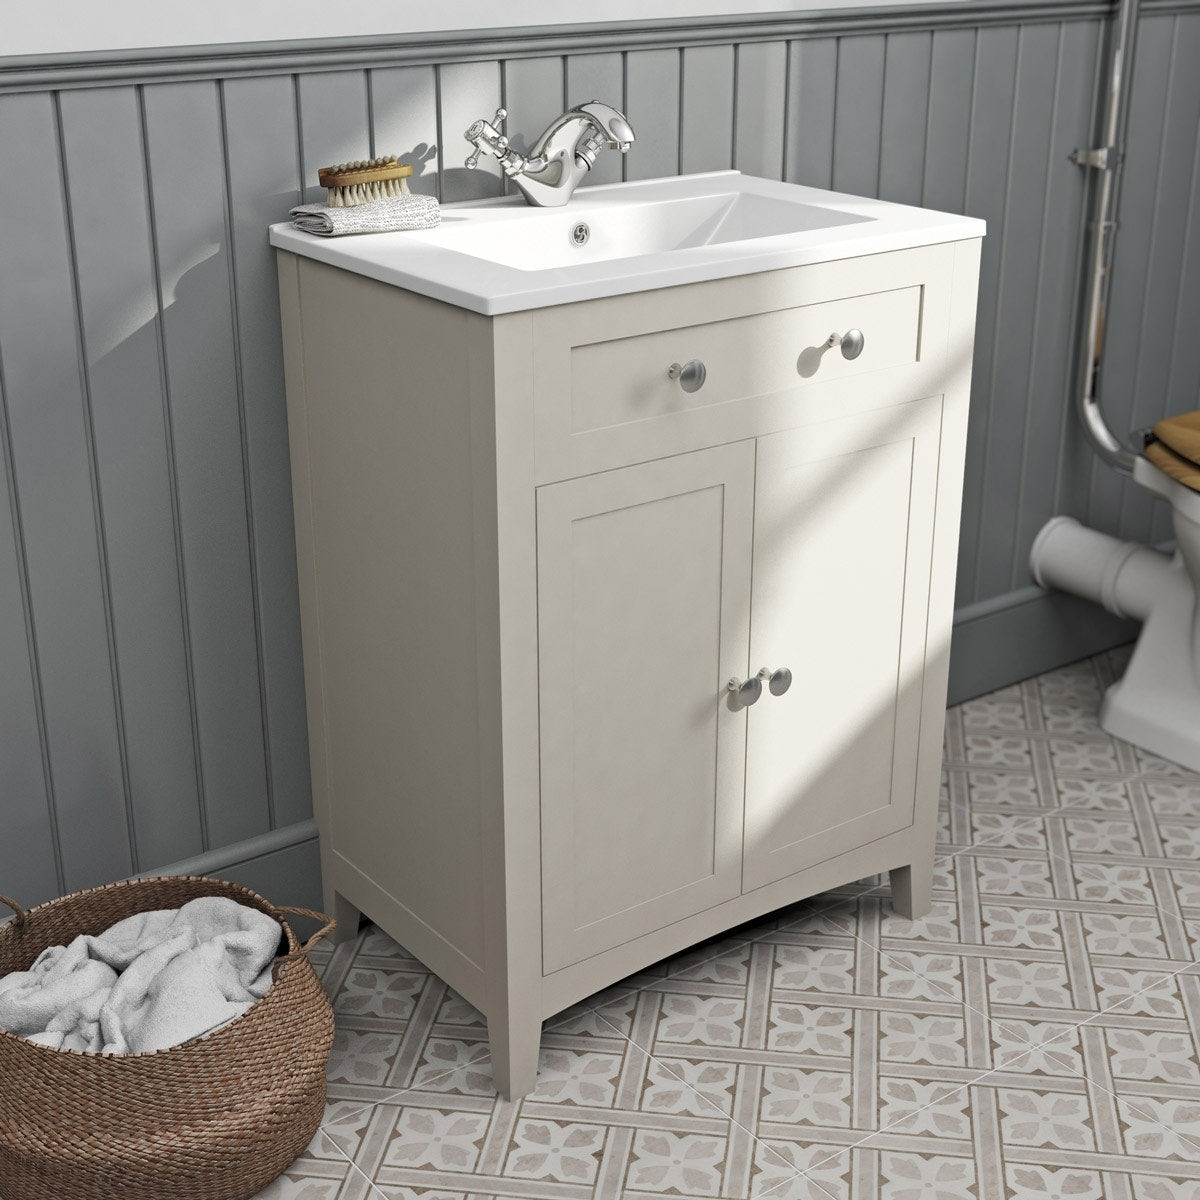 Ivory bathroom suite - The Bath Co Camberley Ivory Low Level Furniture Suite With Straight Bath 1700 X 700mm